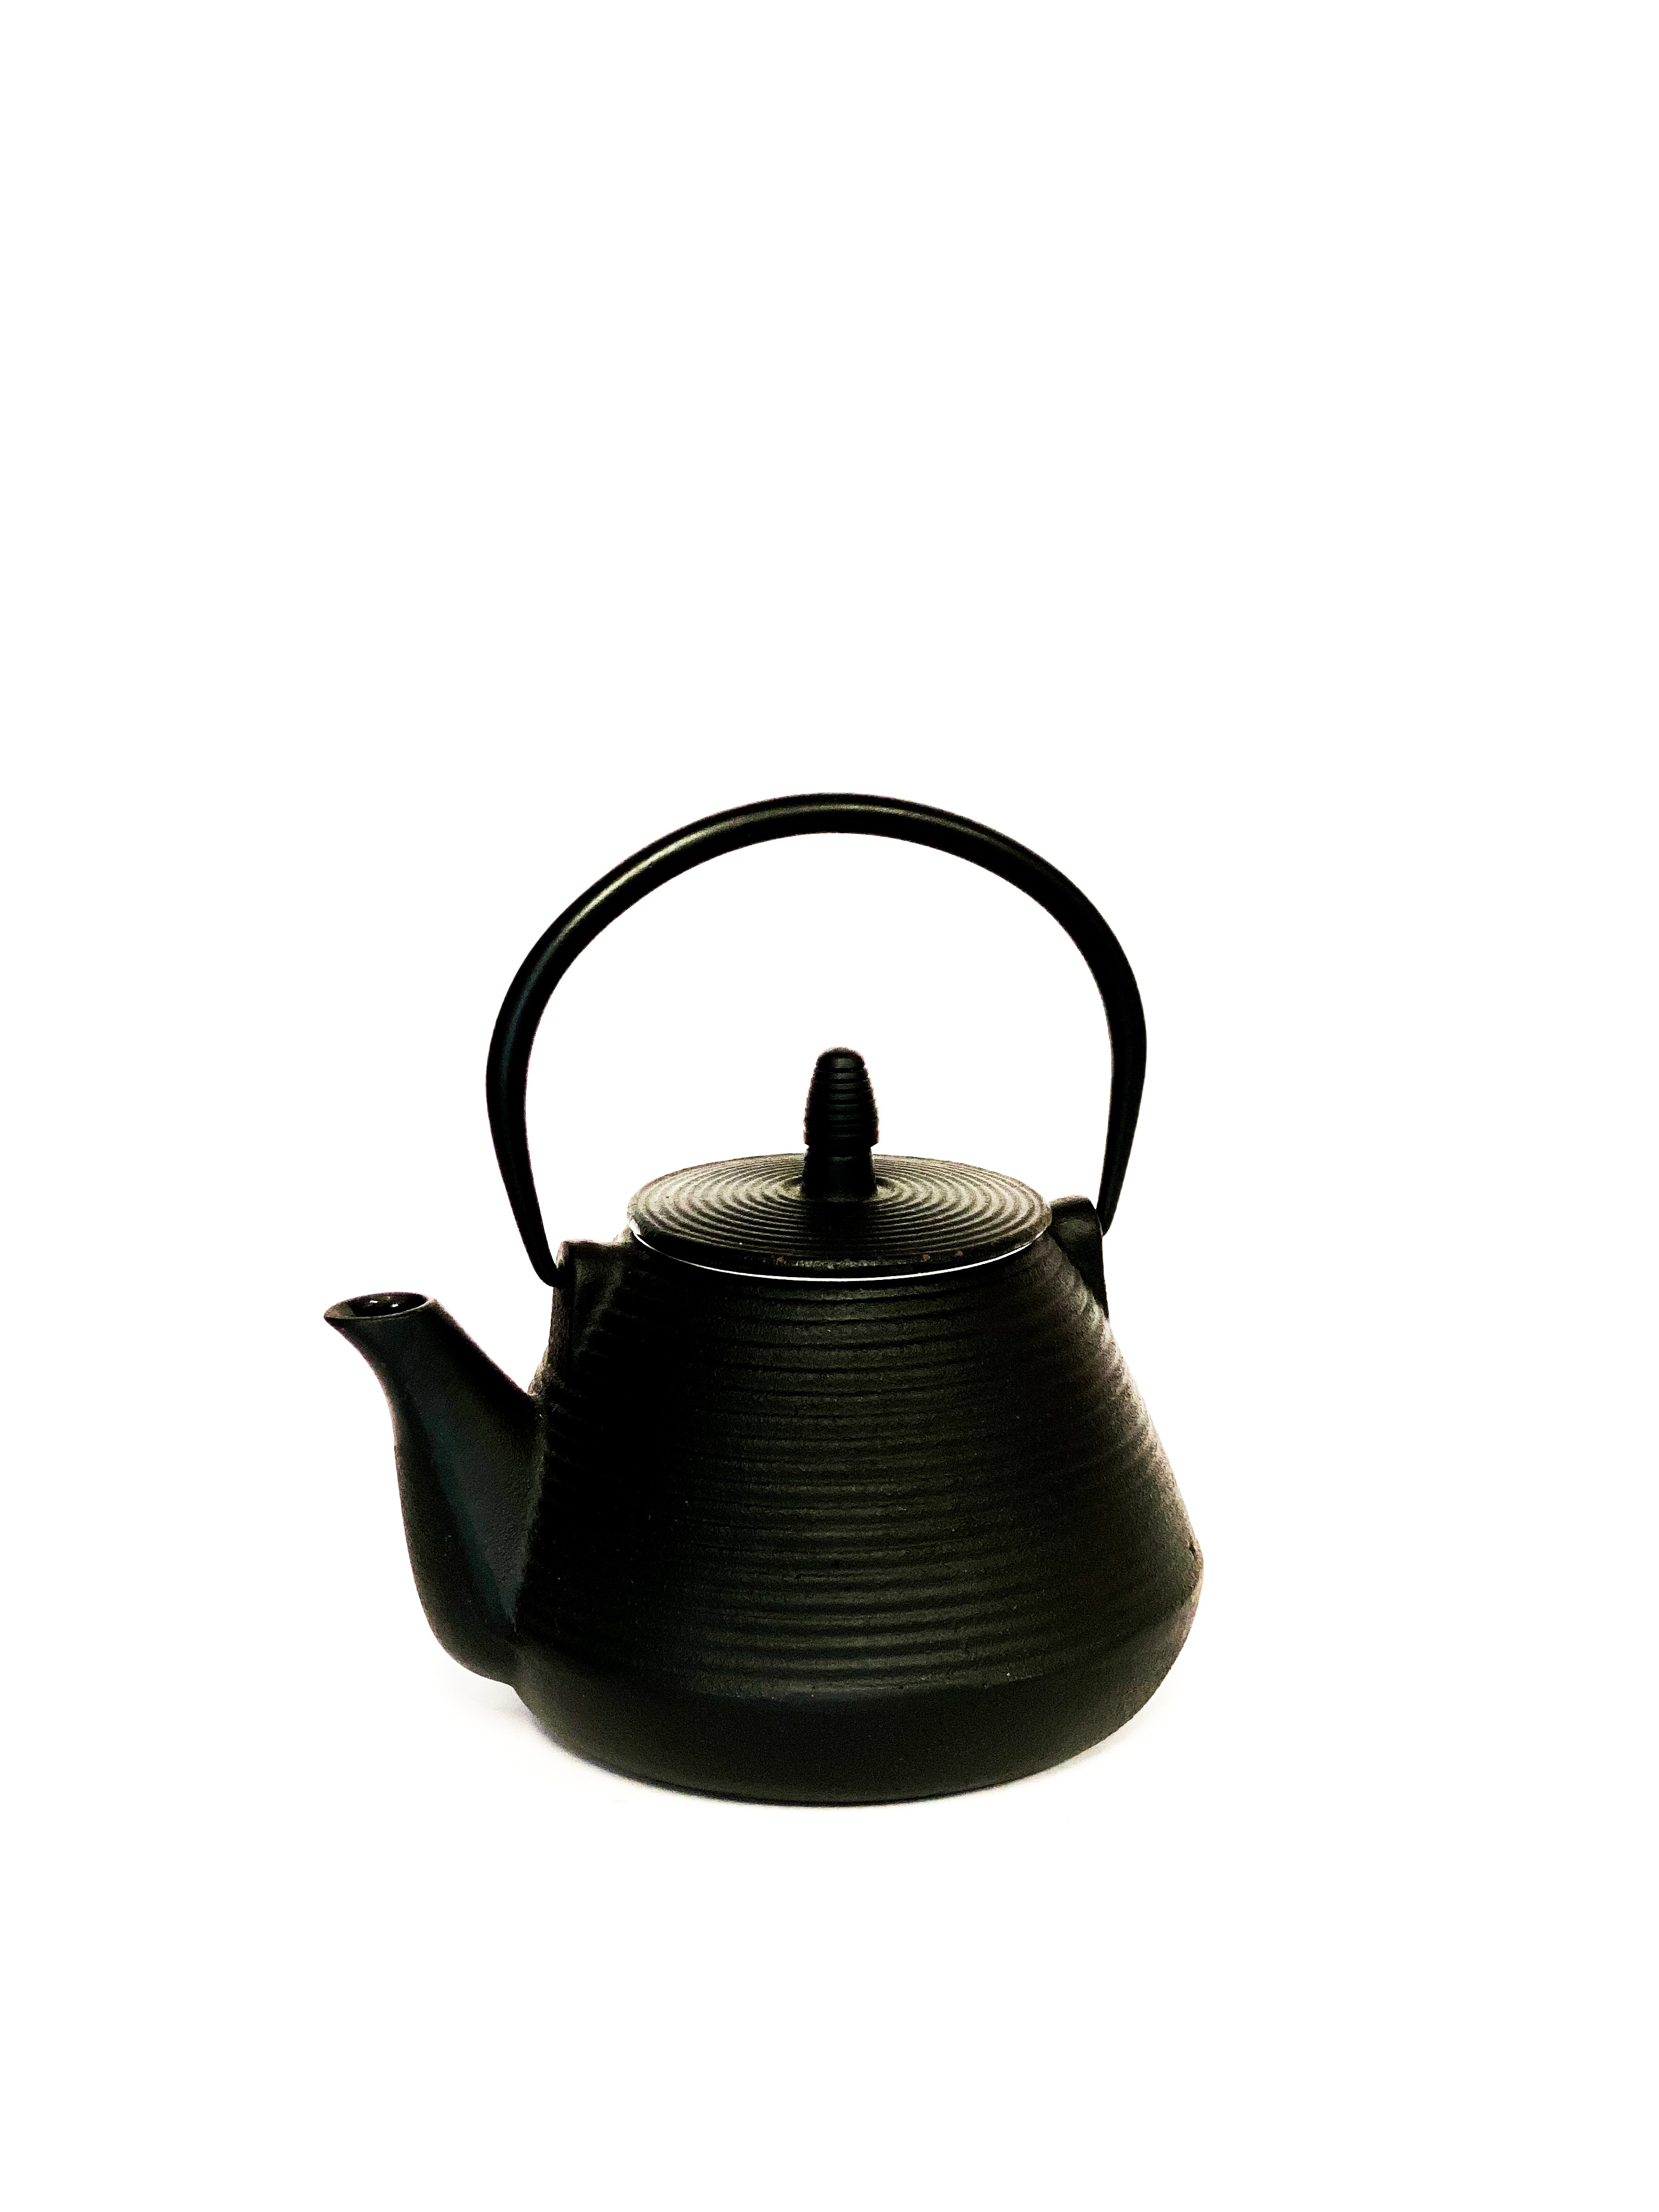 Black teapot japanese style Cast Iron